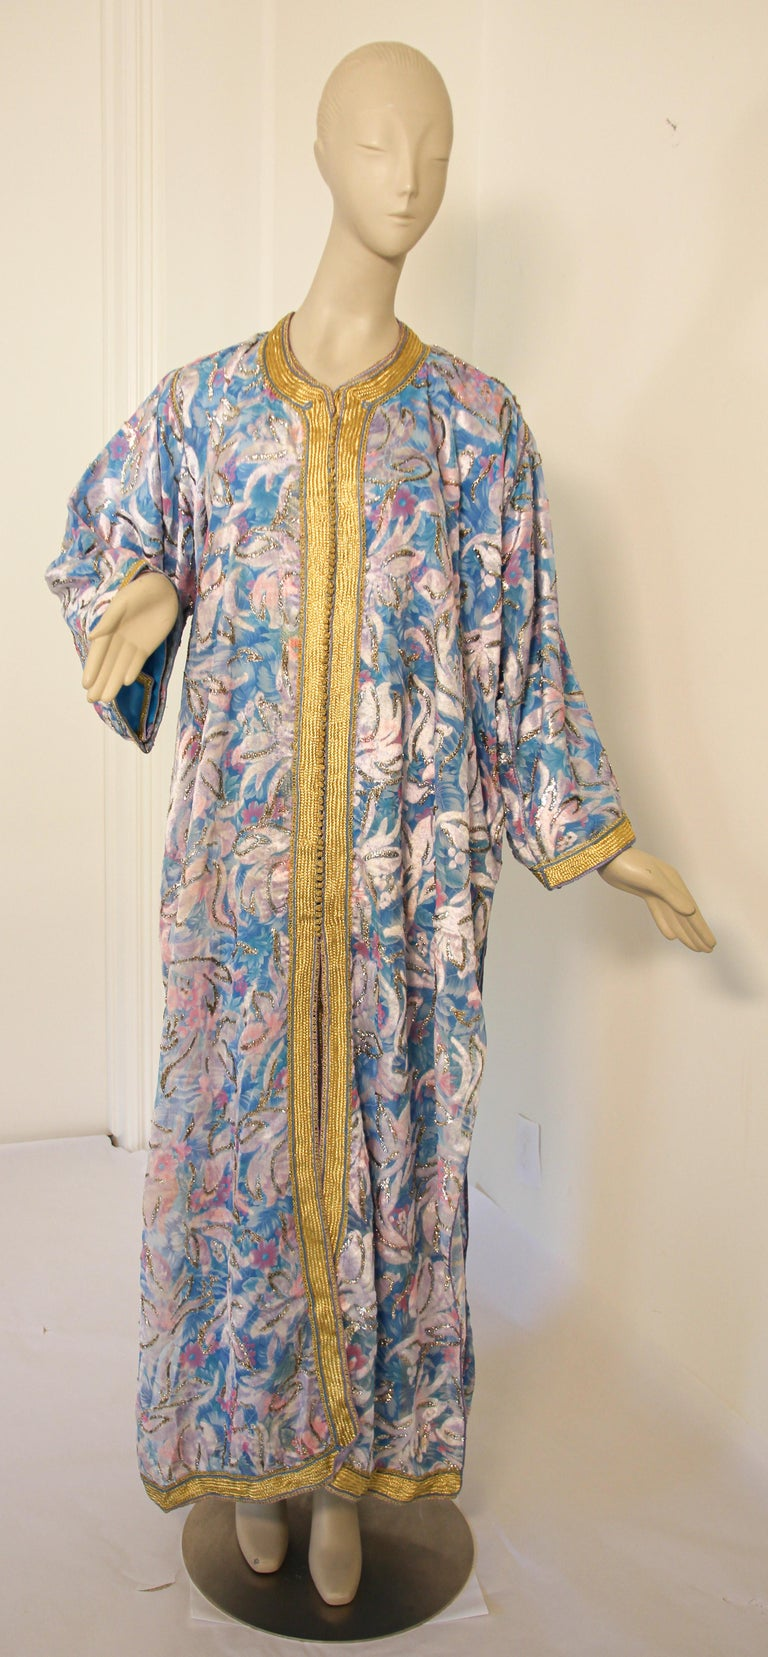 Elegant Moroccan caftan in turquoise and gold floral lame metallic and embroidered trim, circa 1970s. This long maxi dress kaftan is embroidered and embellished entirely by hand. It's crafted in Morocco and tailored for a relaxed fit. One of a